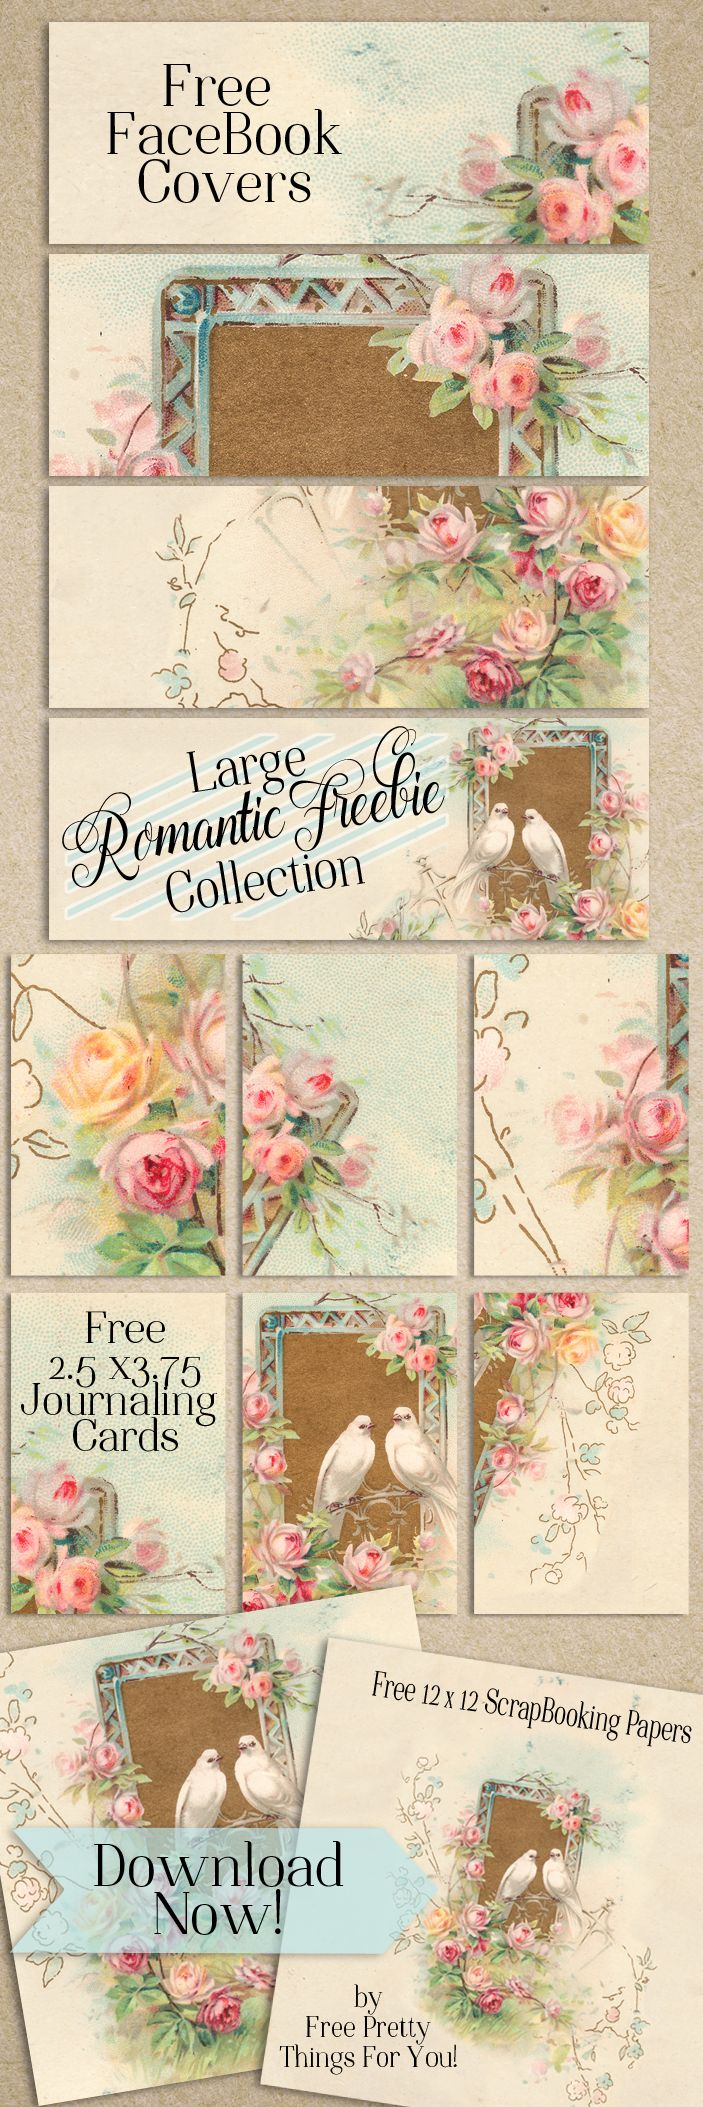 Large Romantic Image Freebie Collection - Free Pretty Things For You